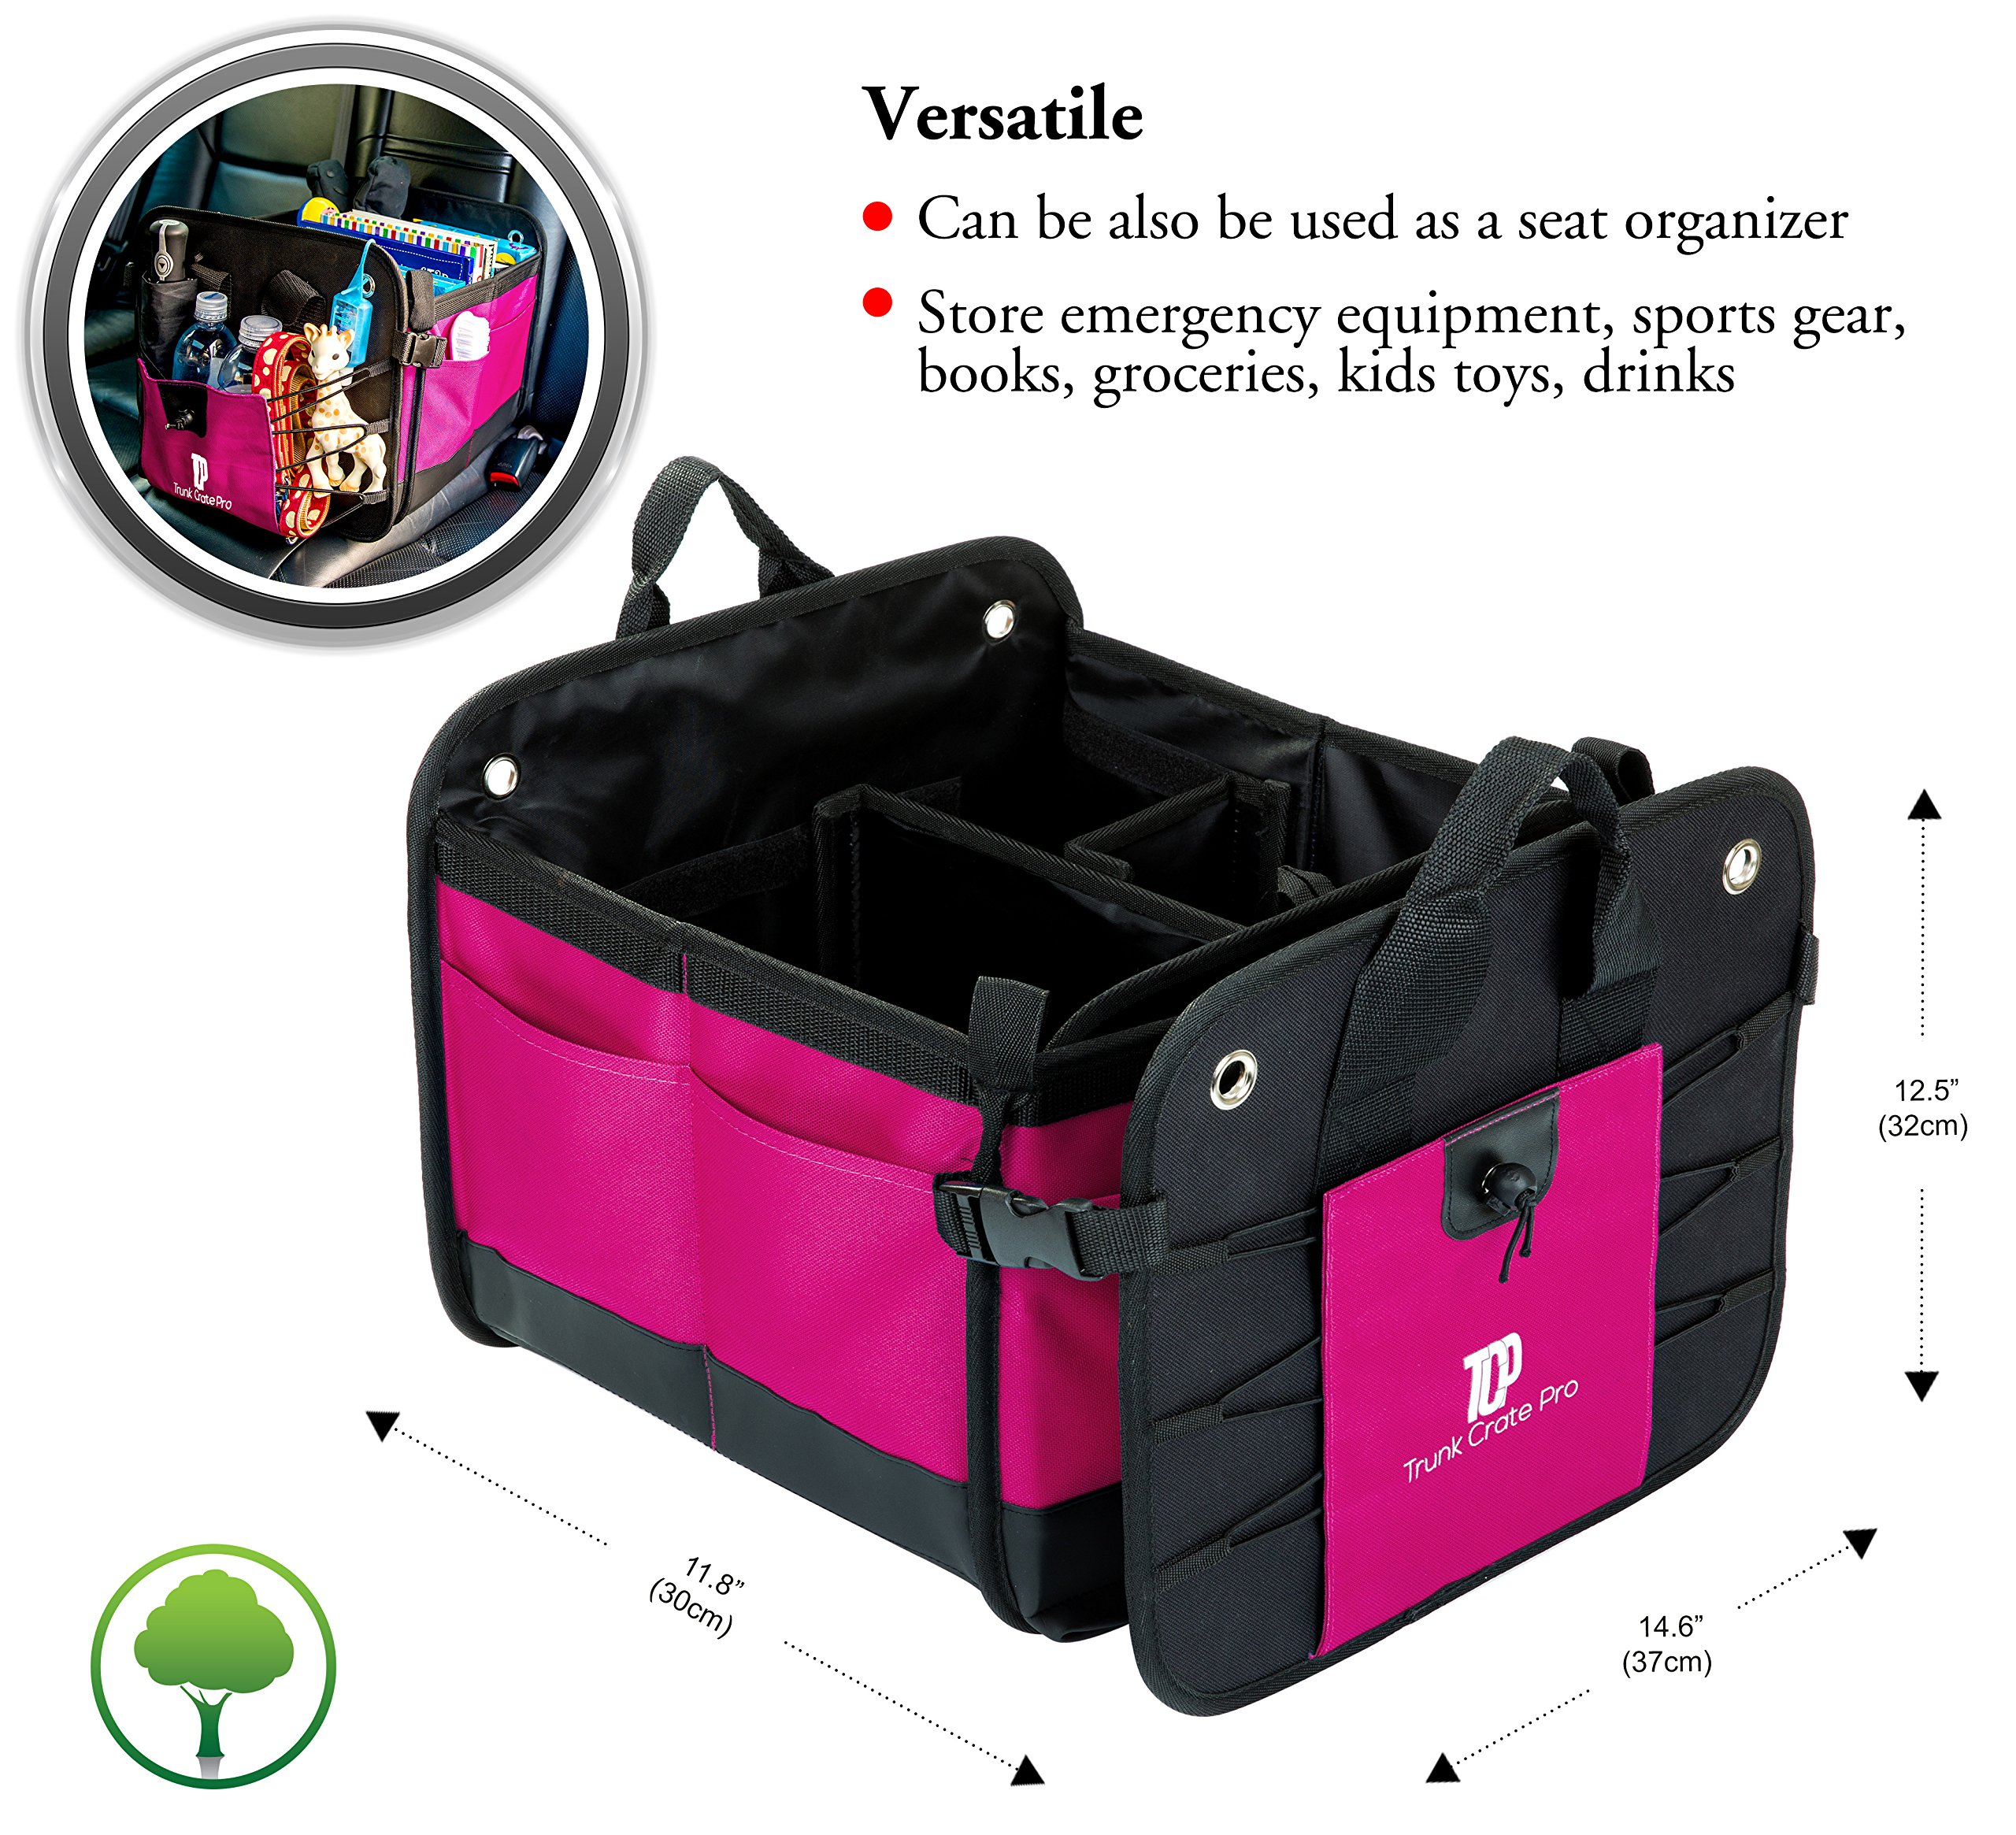 TrunkCratePro Premium Multi Compartments Collapsible Portable Trunk Organizer for auto, SUV, Truck, Minivan (pink) by TrunkCratePro (Image #4)